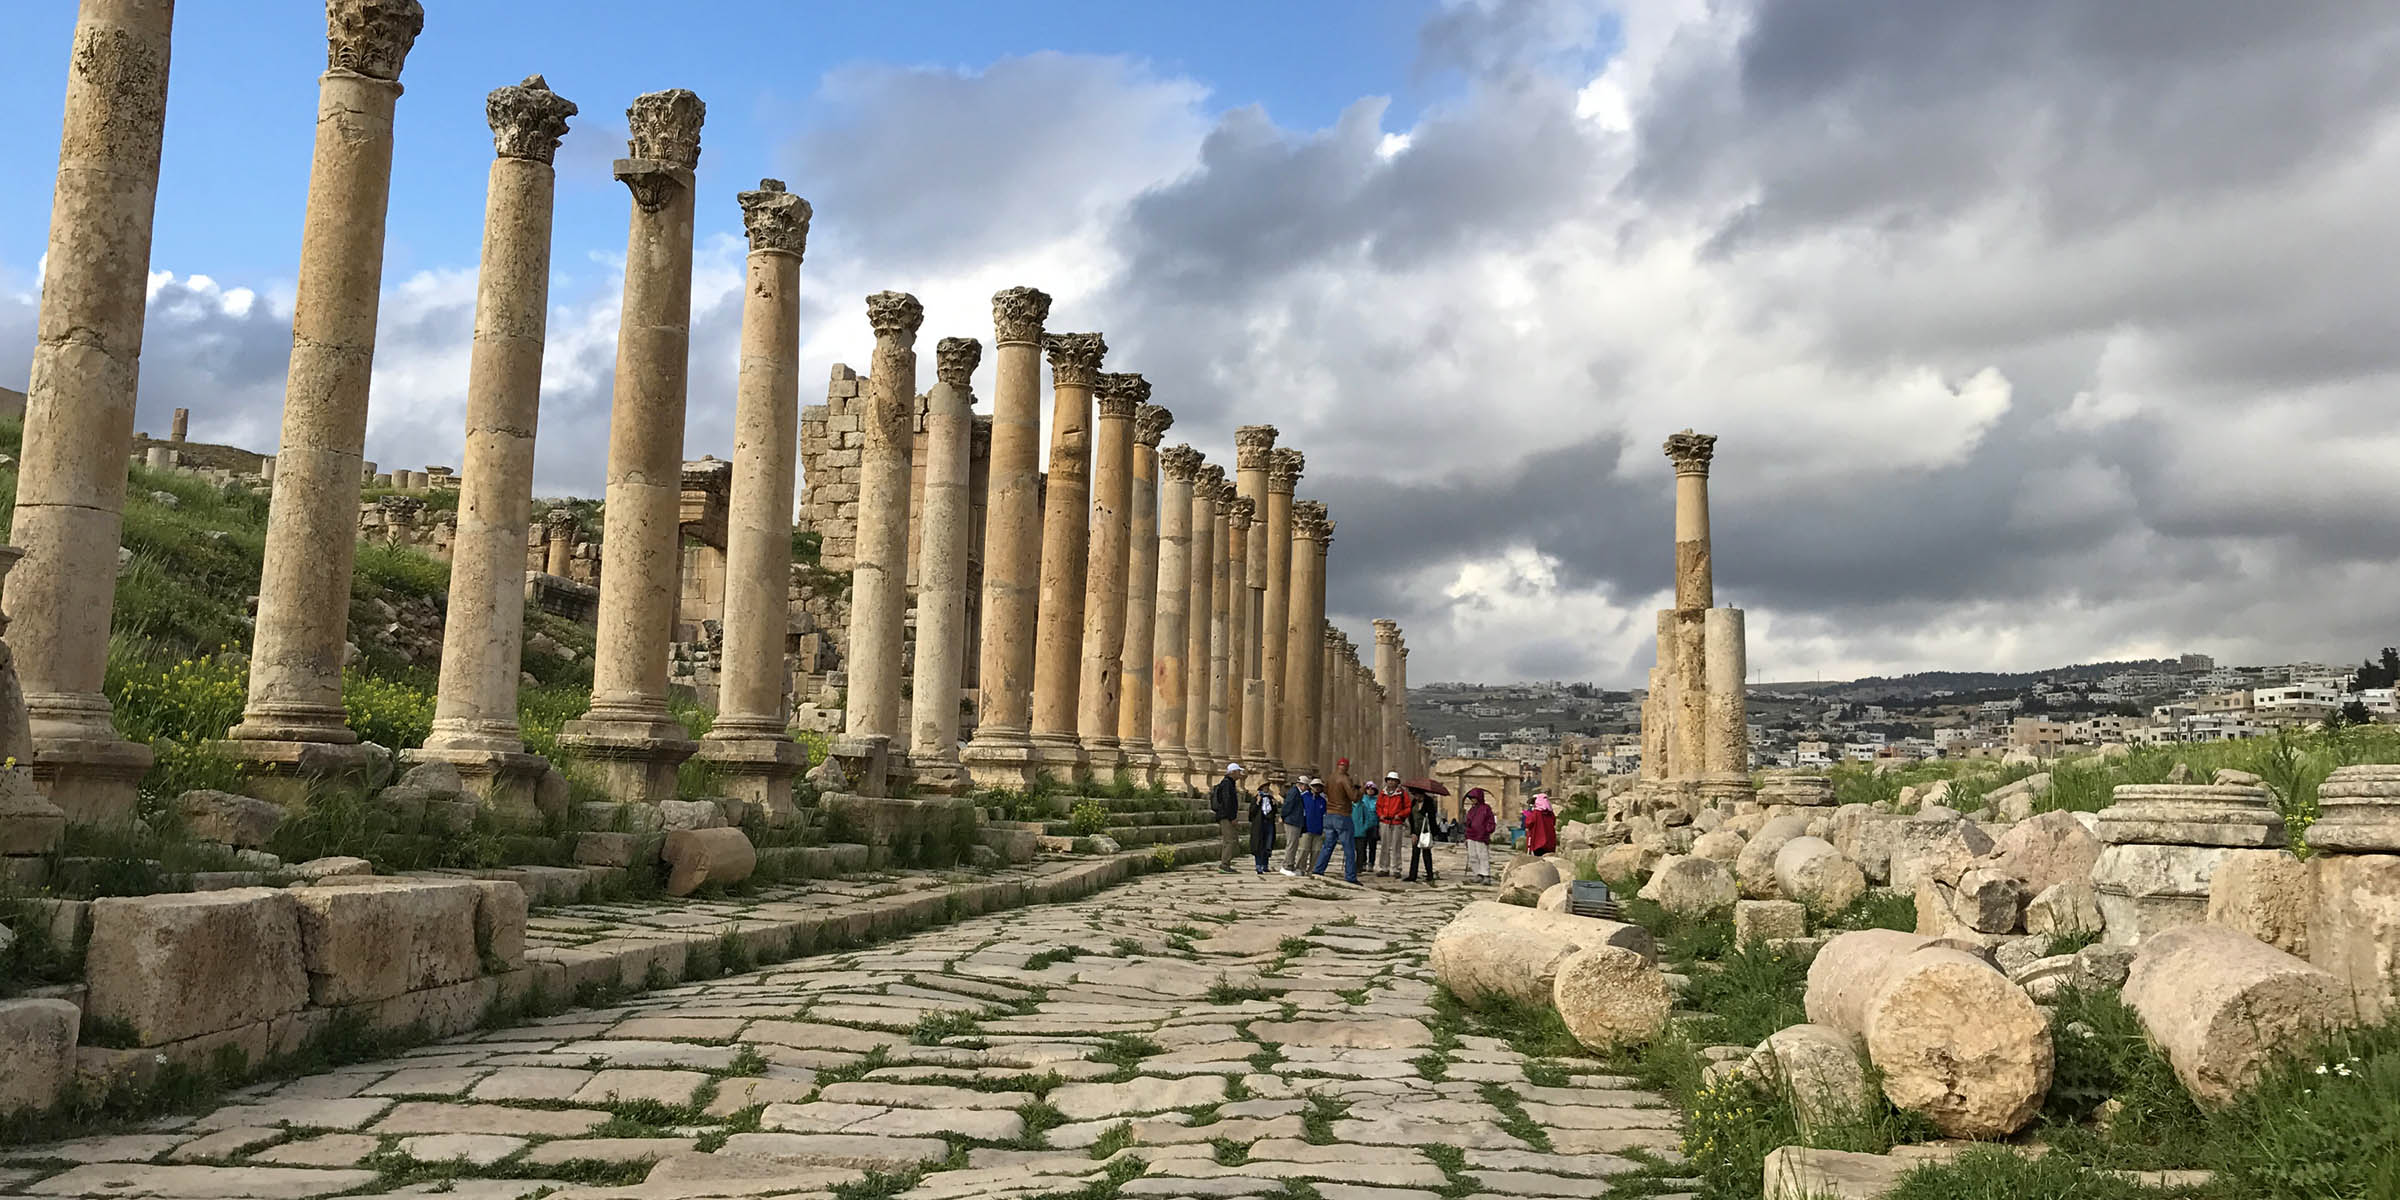 Jerash is a city in Jordan, north of the capital Amman with ruins of the walled Greco-Roman settlement of Gerasa